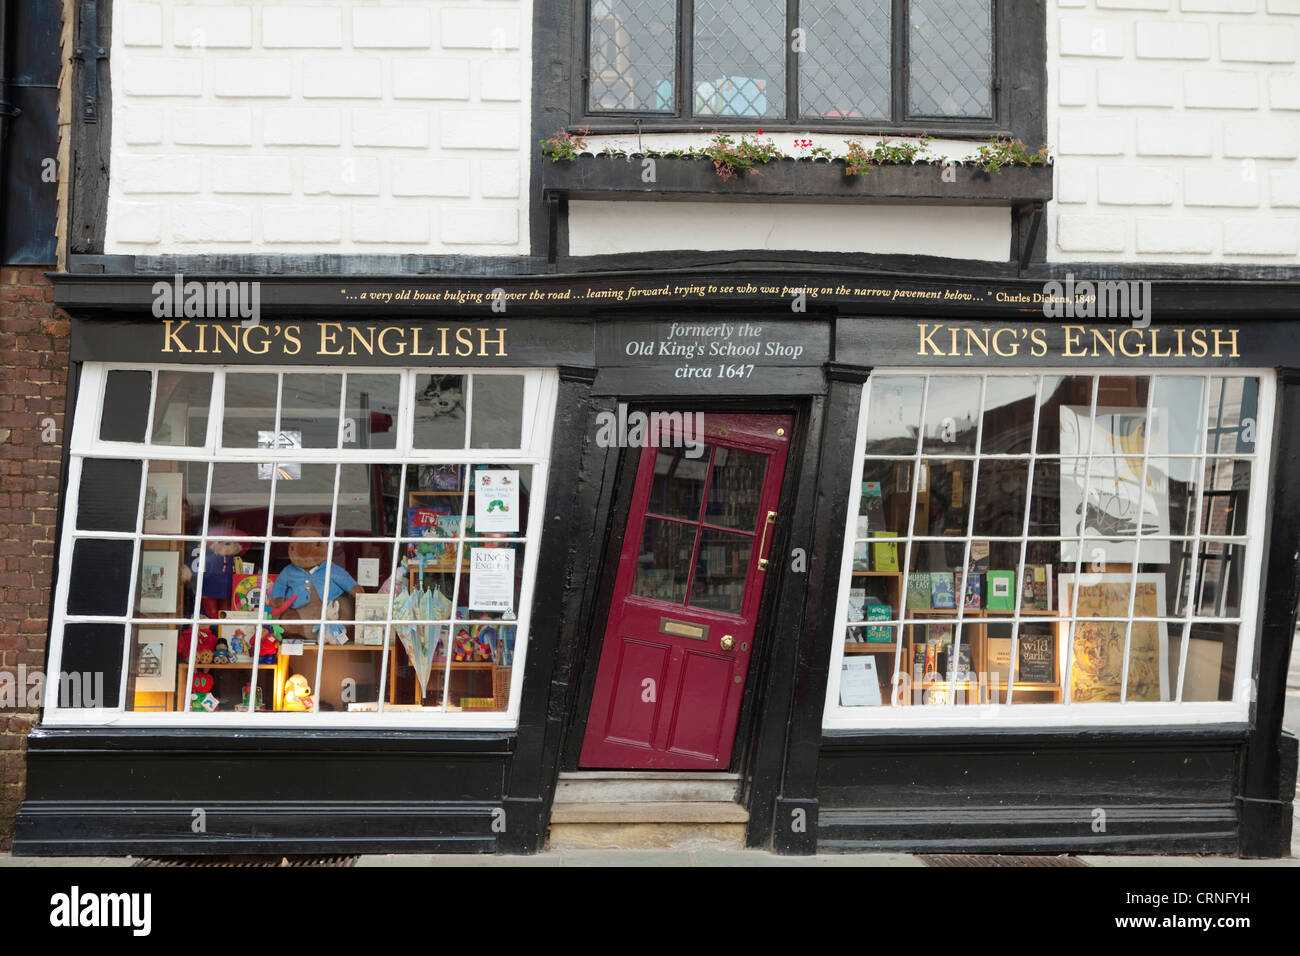 The crooked door King\u0027s English an independent bookshop in a 17th century townhouse once the shop for Old King\u0027s School. & The crooked door King\u0027s English an independent bookshop in a 17th ...